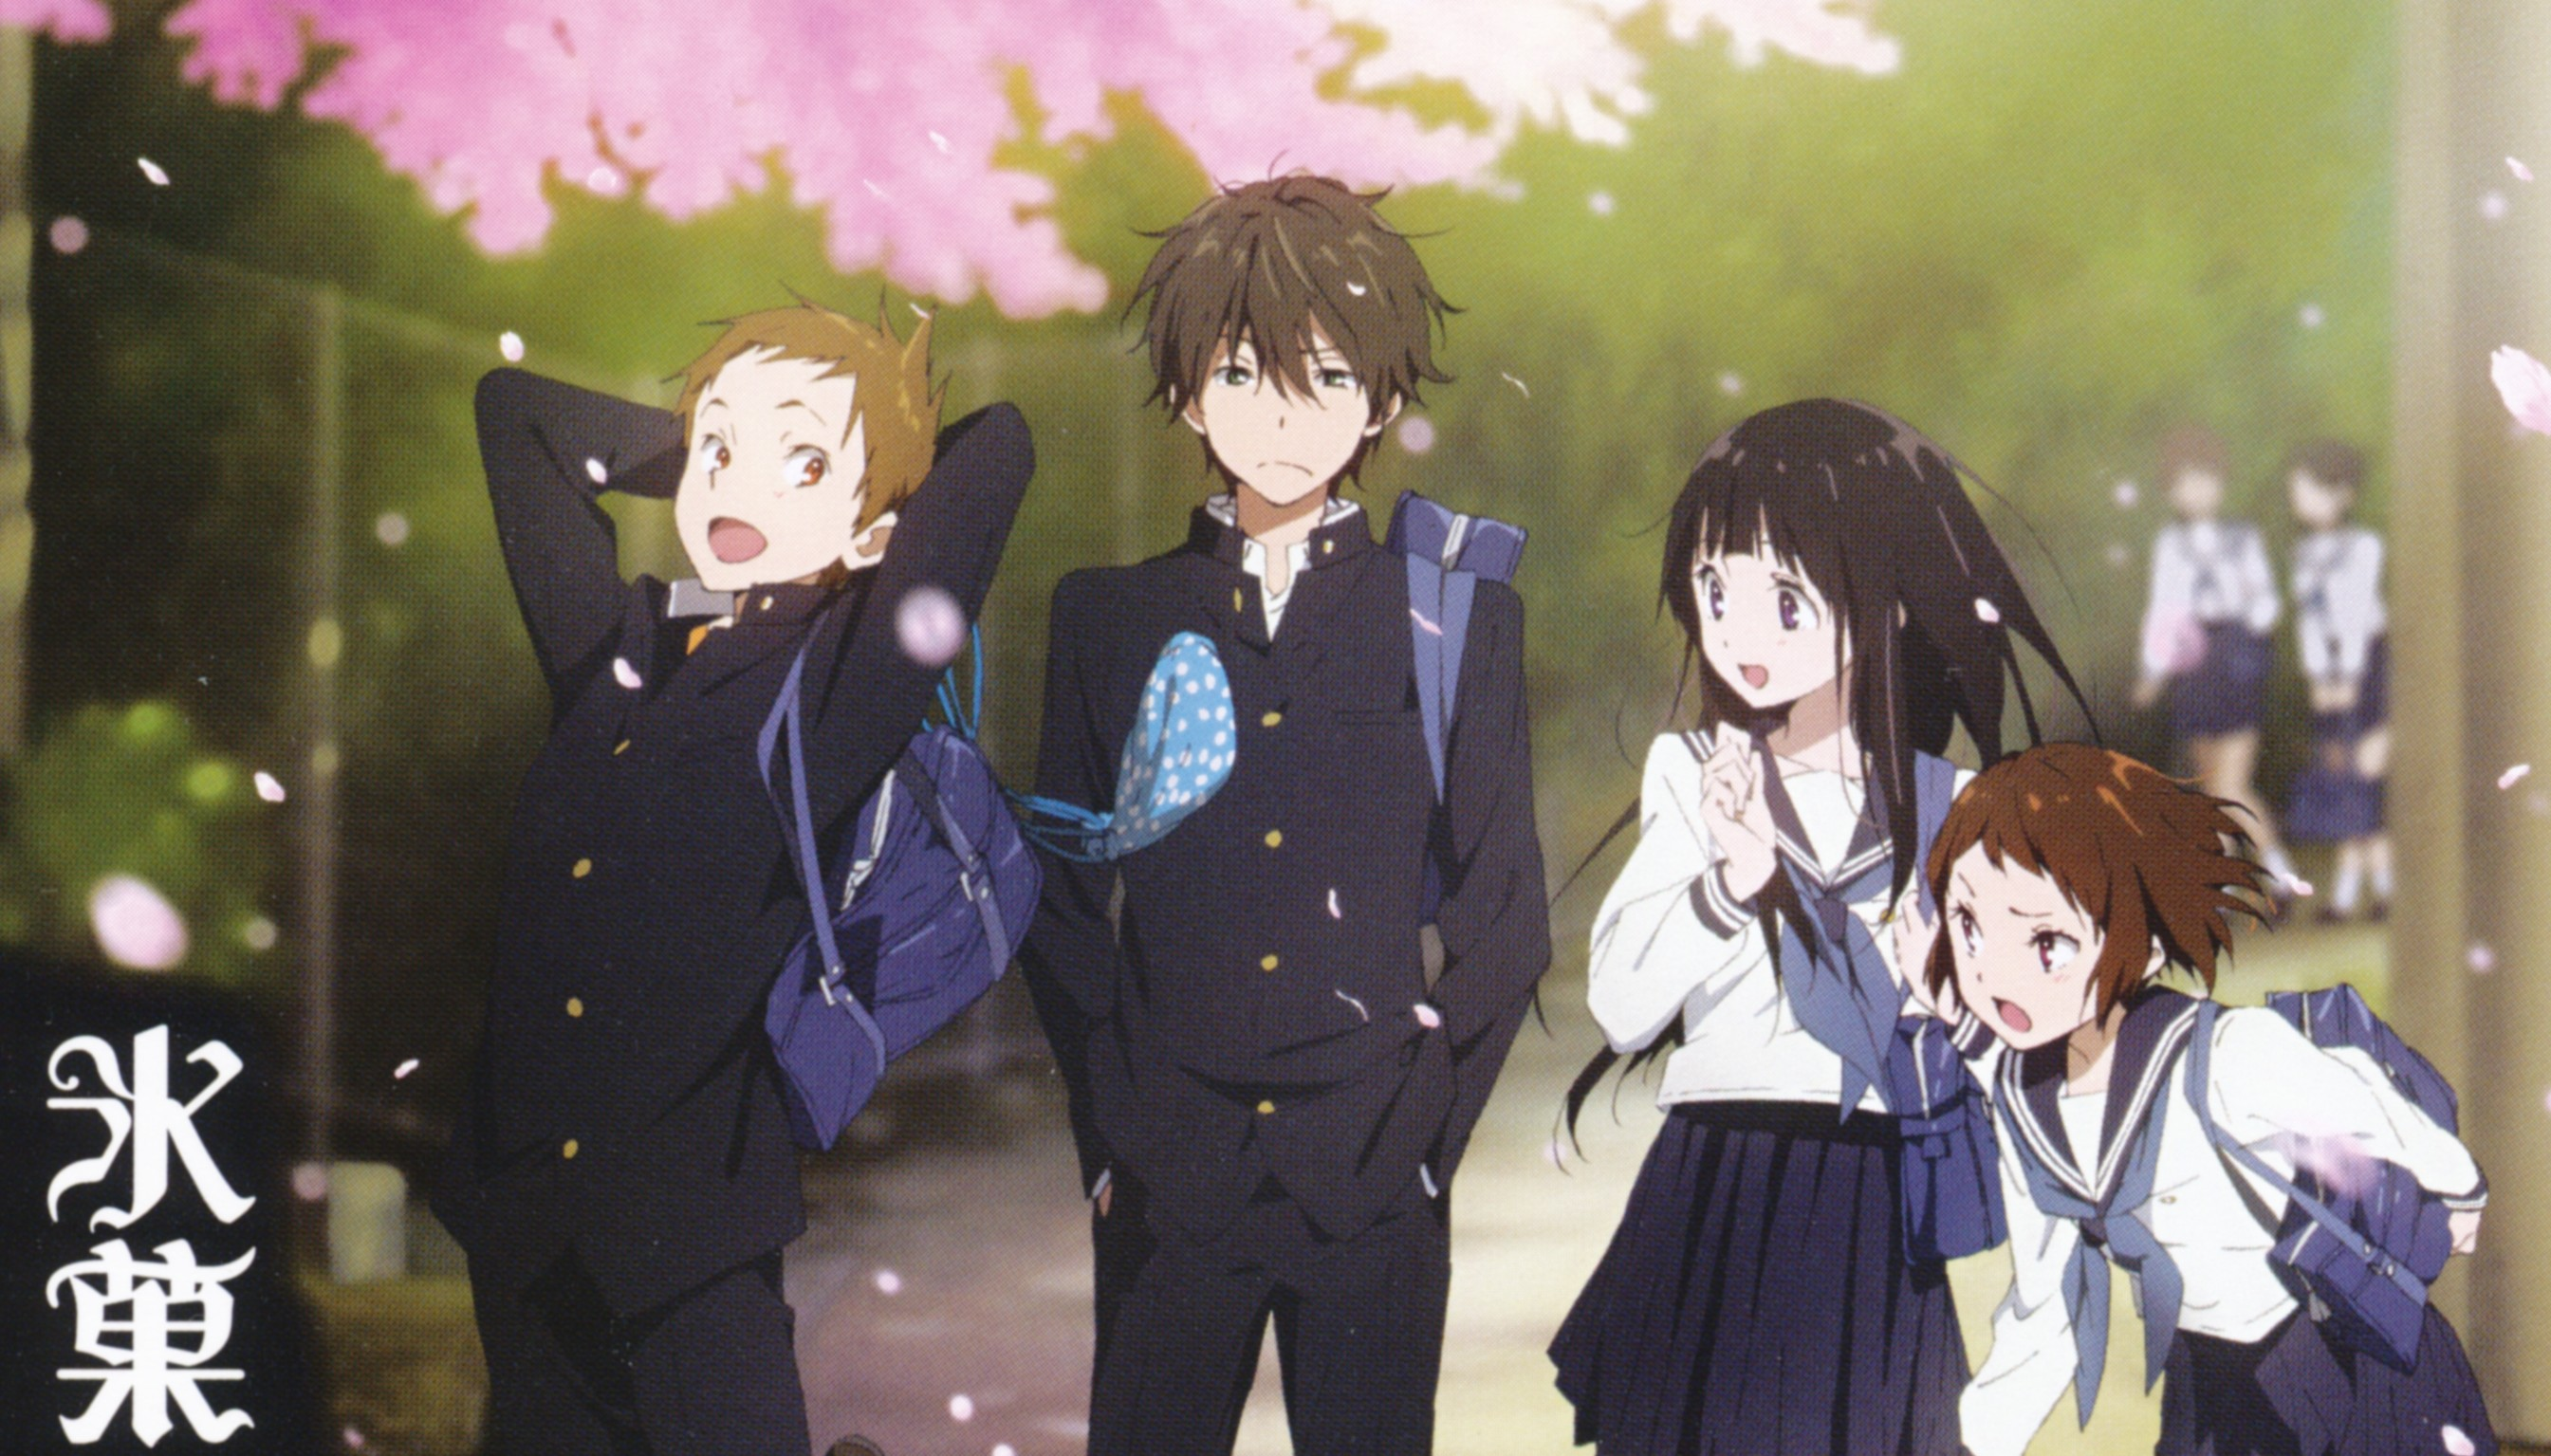 HQ Hyouka Wallpapers | File 753.84Kb